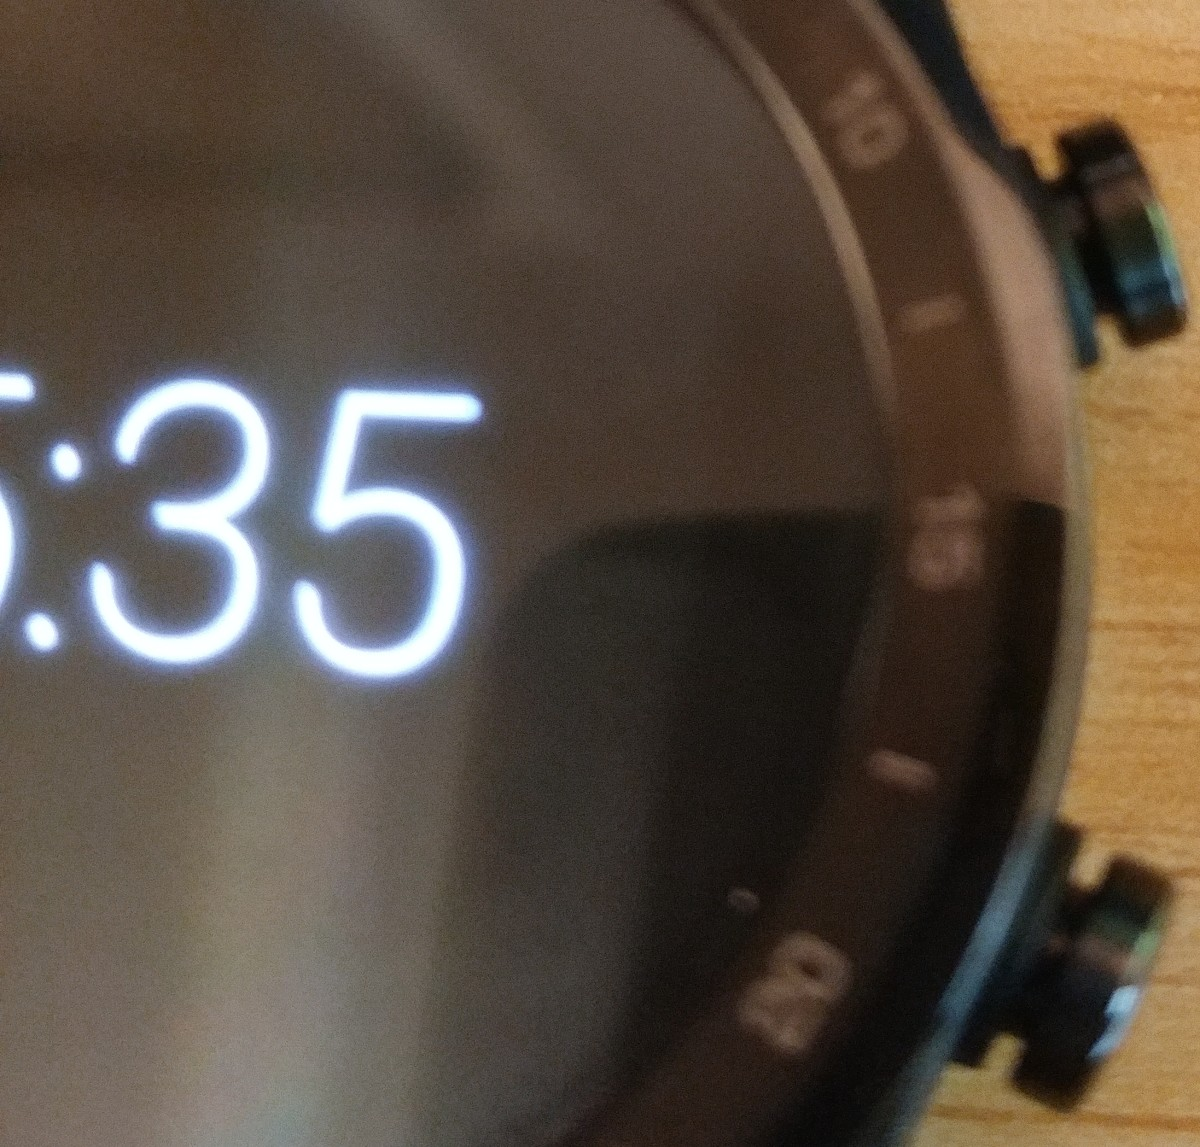 These are the buttons (crowns) on the TicWatch Pro.